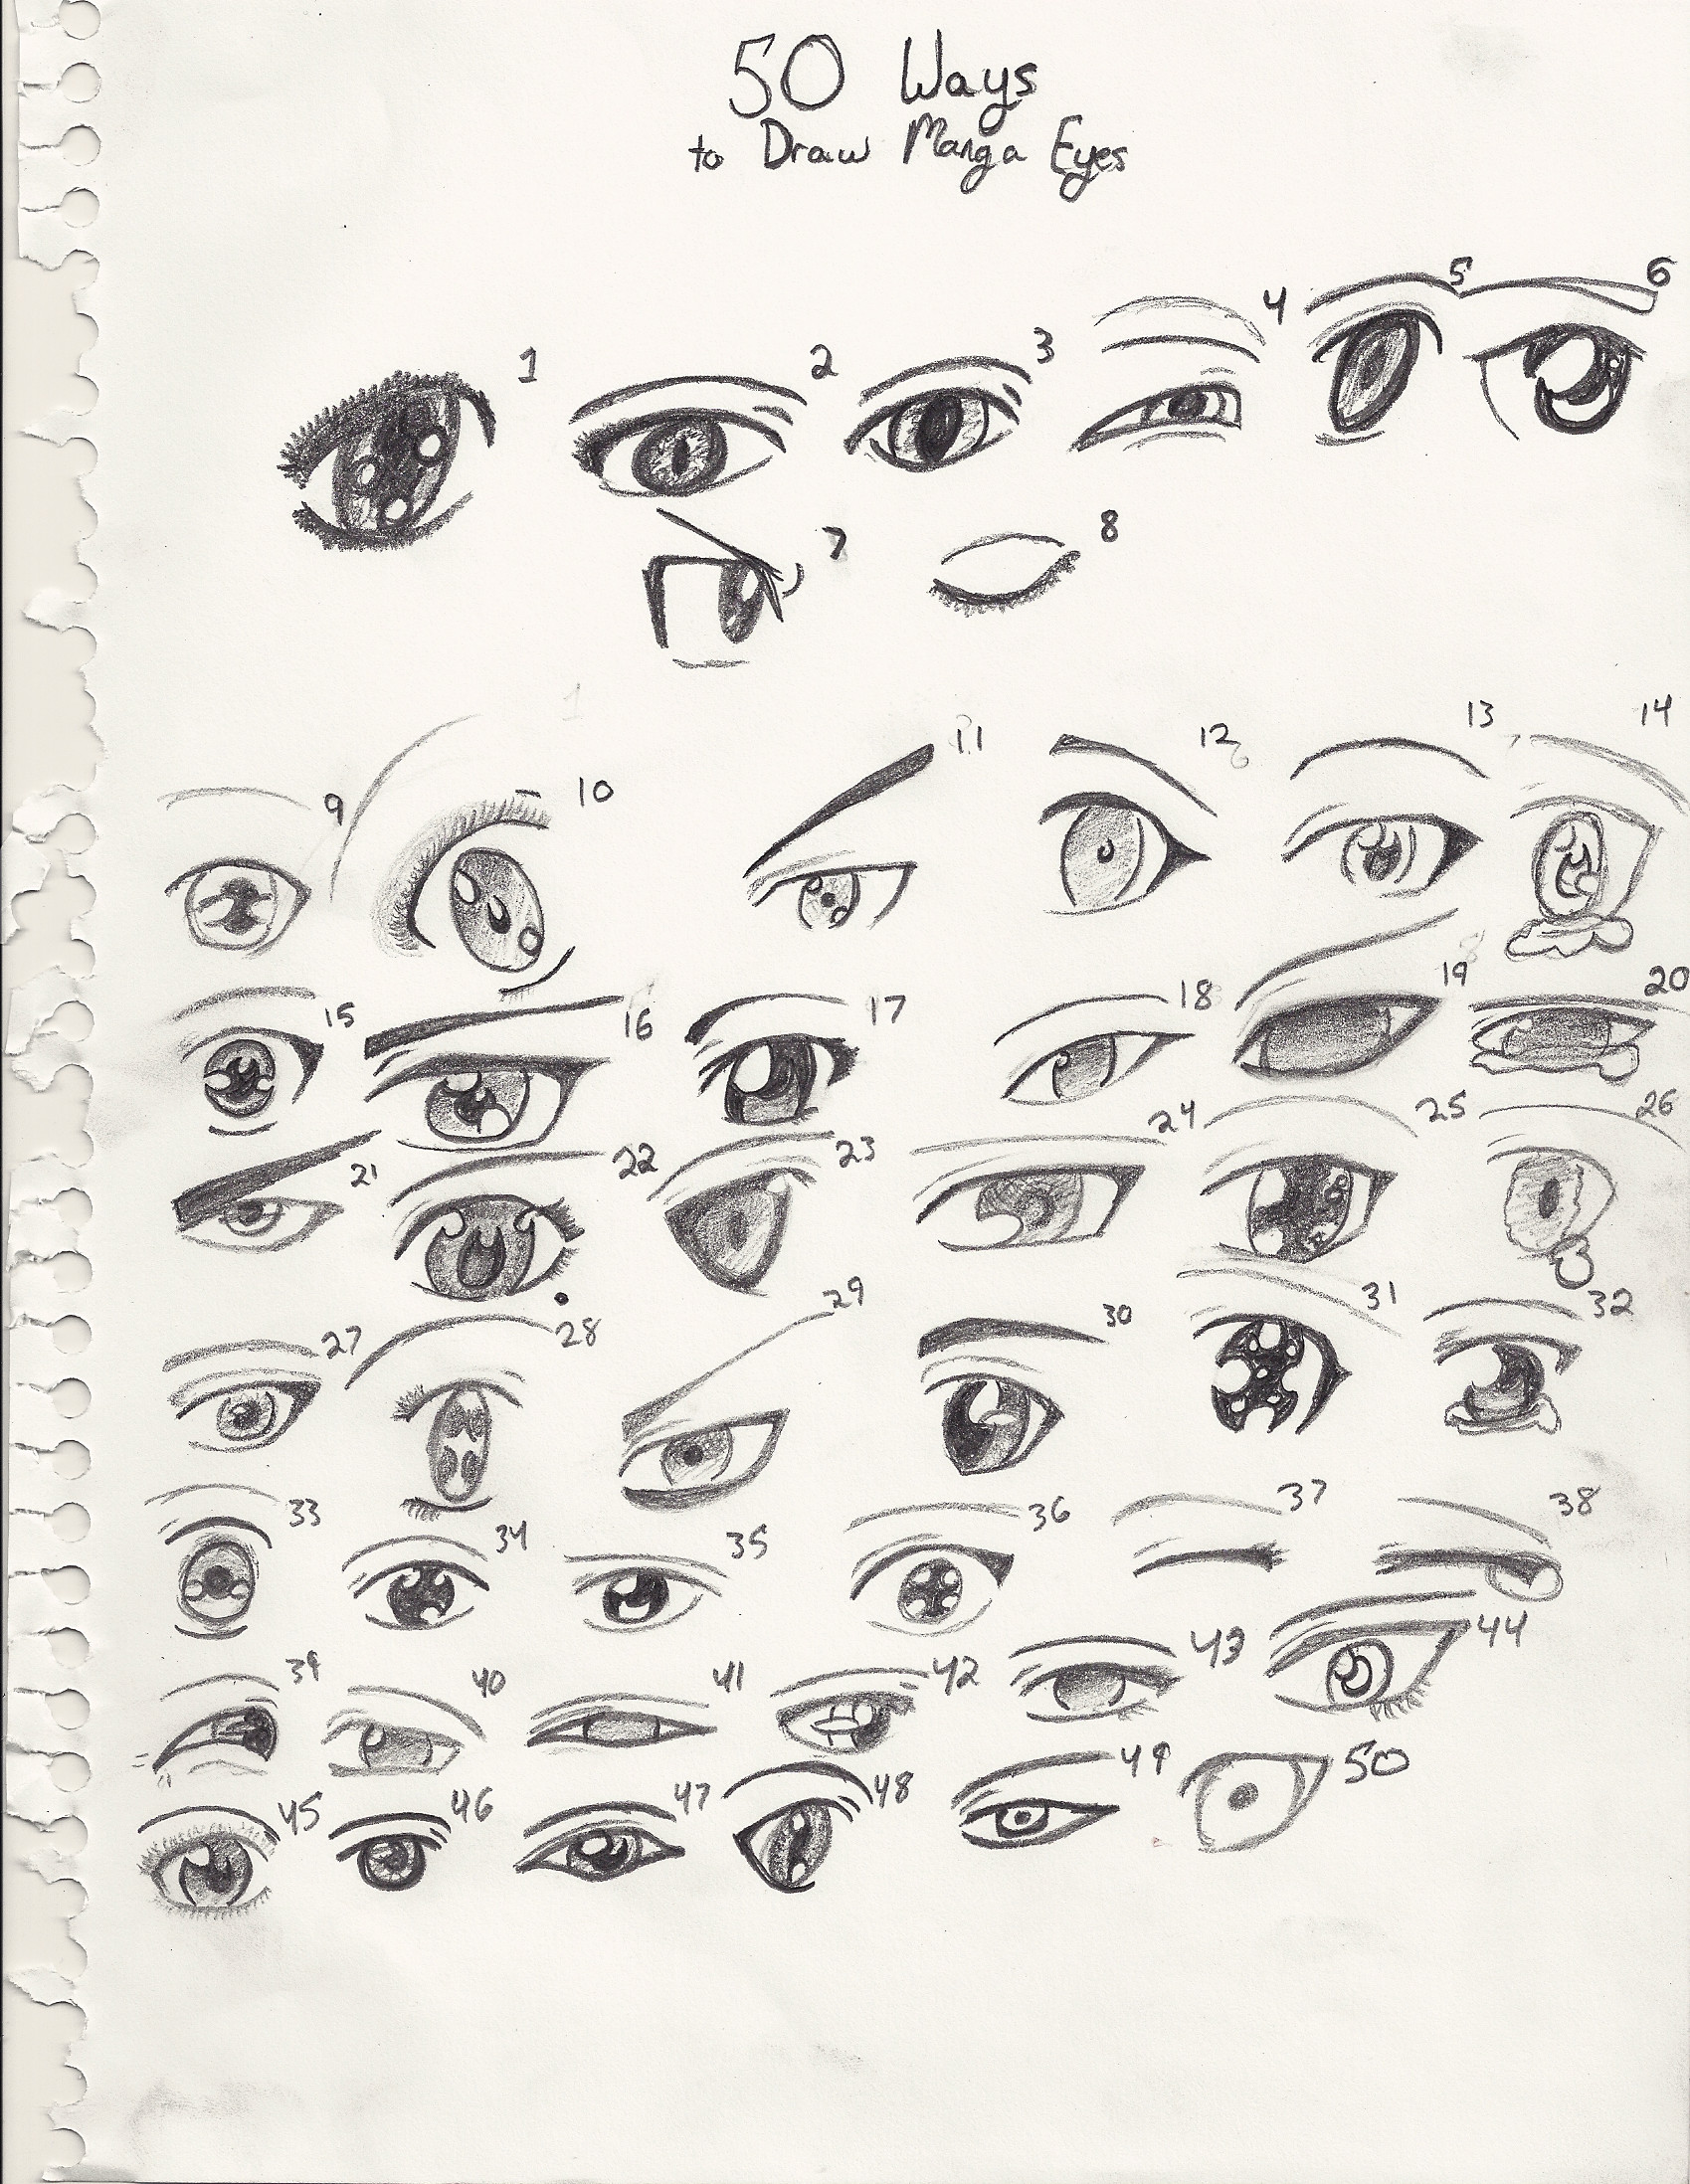 50 Ways To Draw Manga Eyes By Coraline Dark On Deviantart